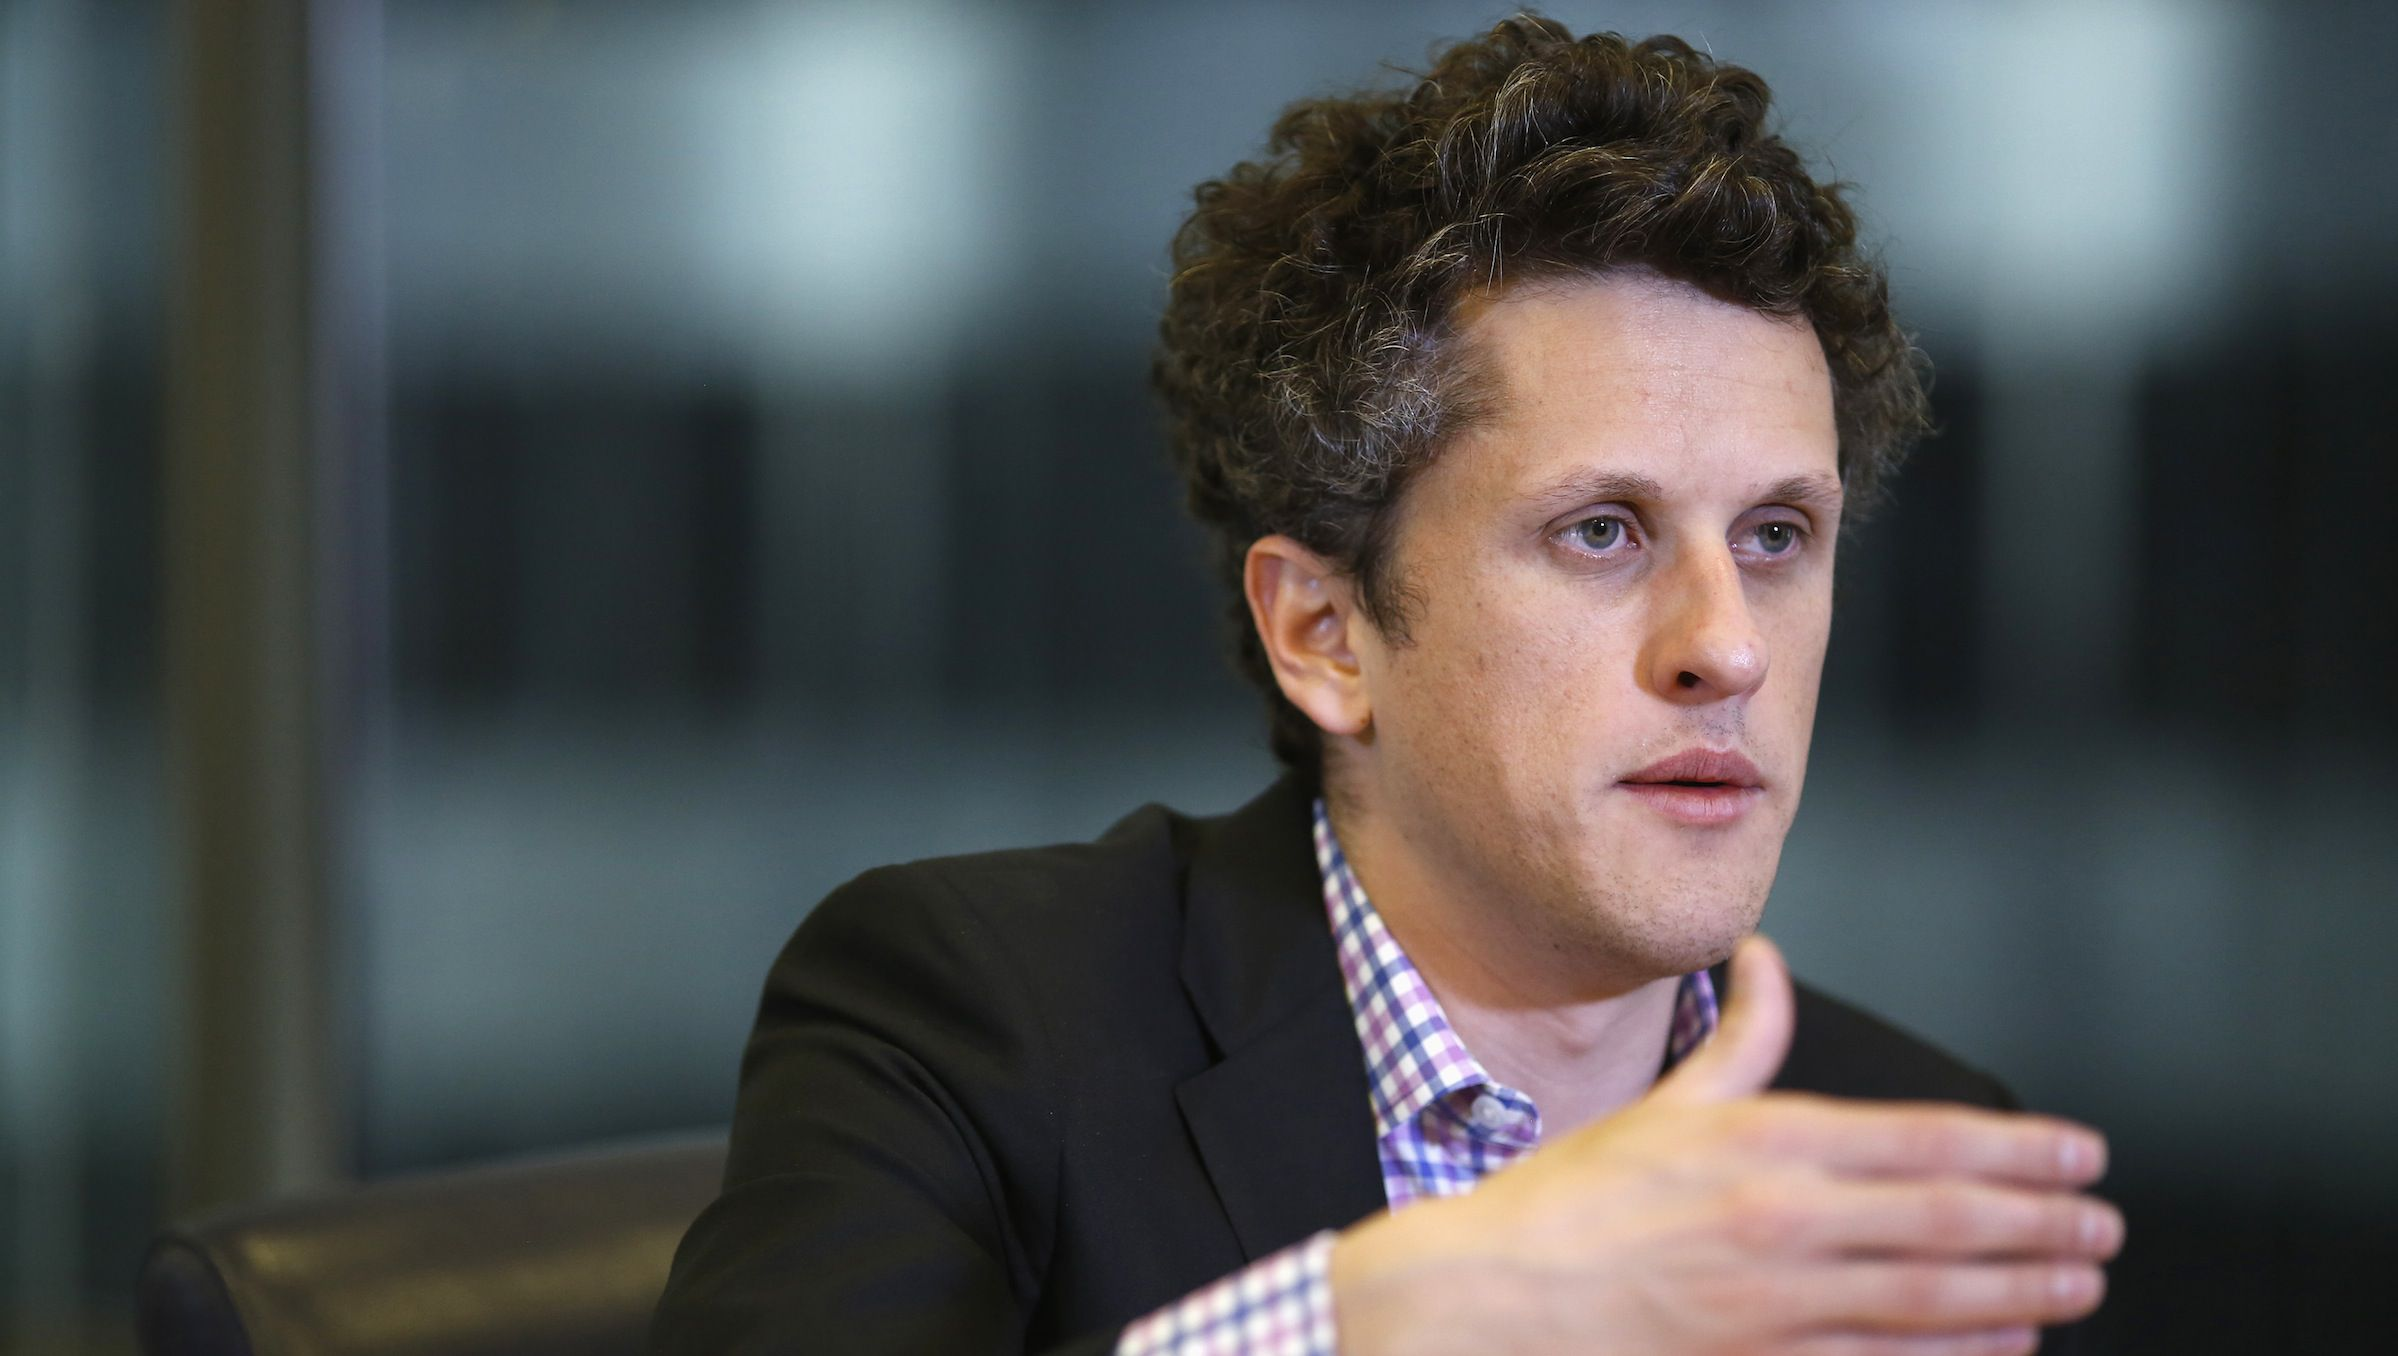 Aaron Levie, co-founder and chief executive of Box, speaks during Reuters Global Technology Summit in San Francisco, June 19, 2013. REUTERS/Stephen Lam (UNITED STATES - Tags: BUSINESS SCIENCE TECHNOLOGY) - RTX10U2I